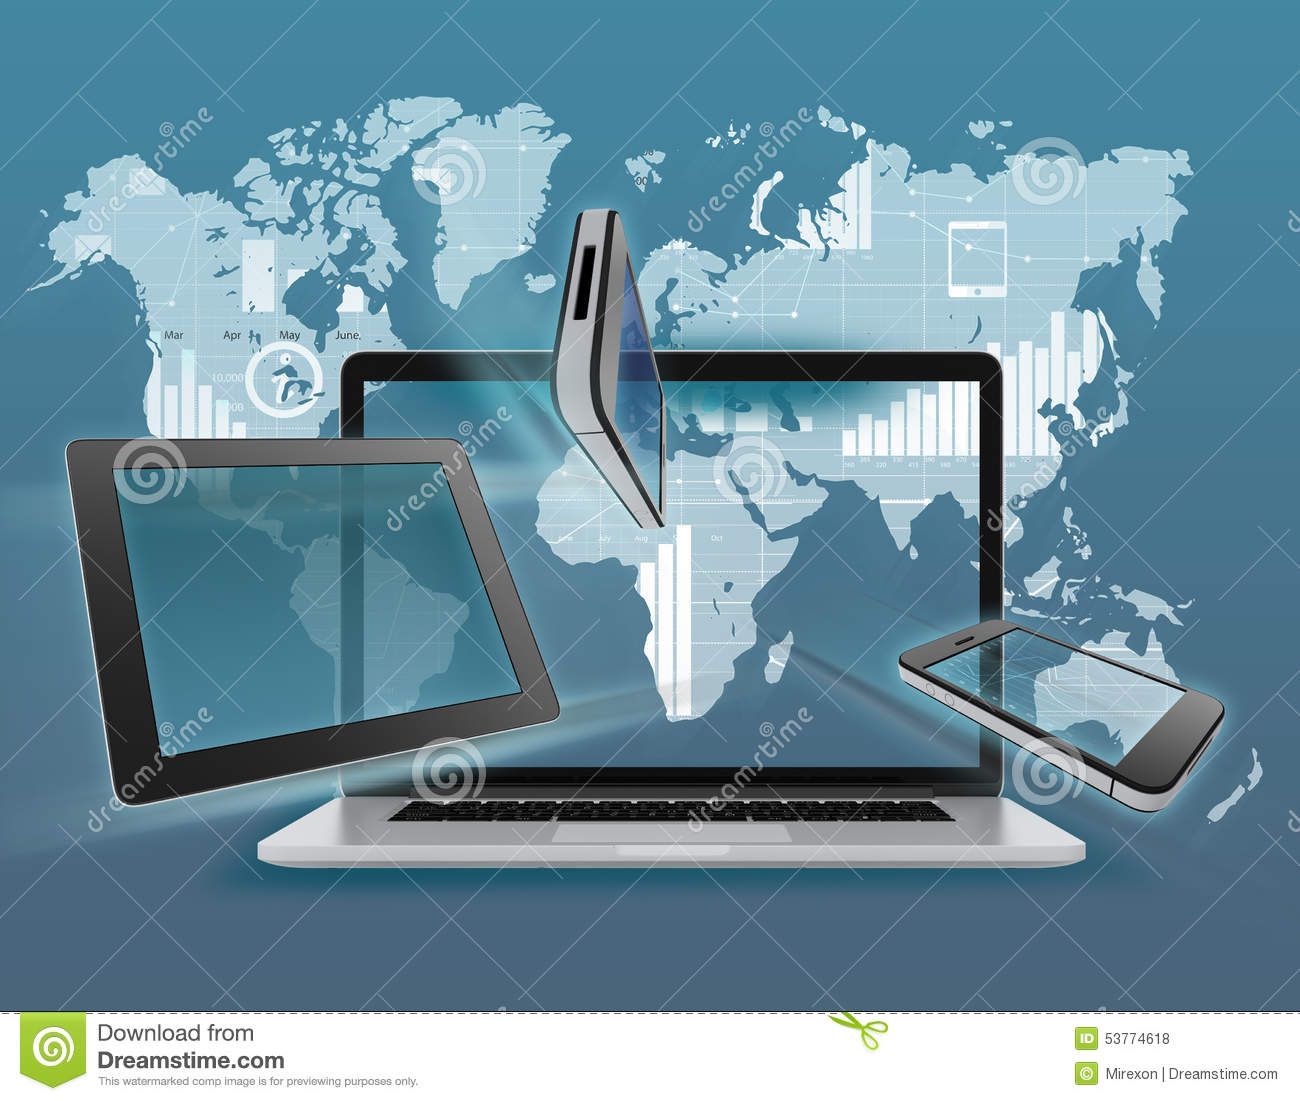 Laptop tablet phone on background of world map stock illustration laptop tablet phone on background of world map royalty free illustration download laptop gumiabroncs Images